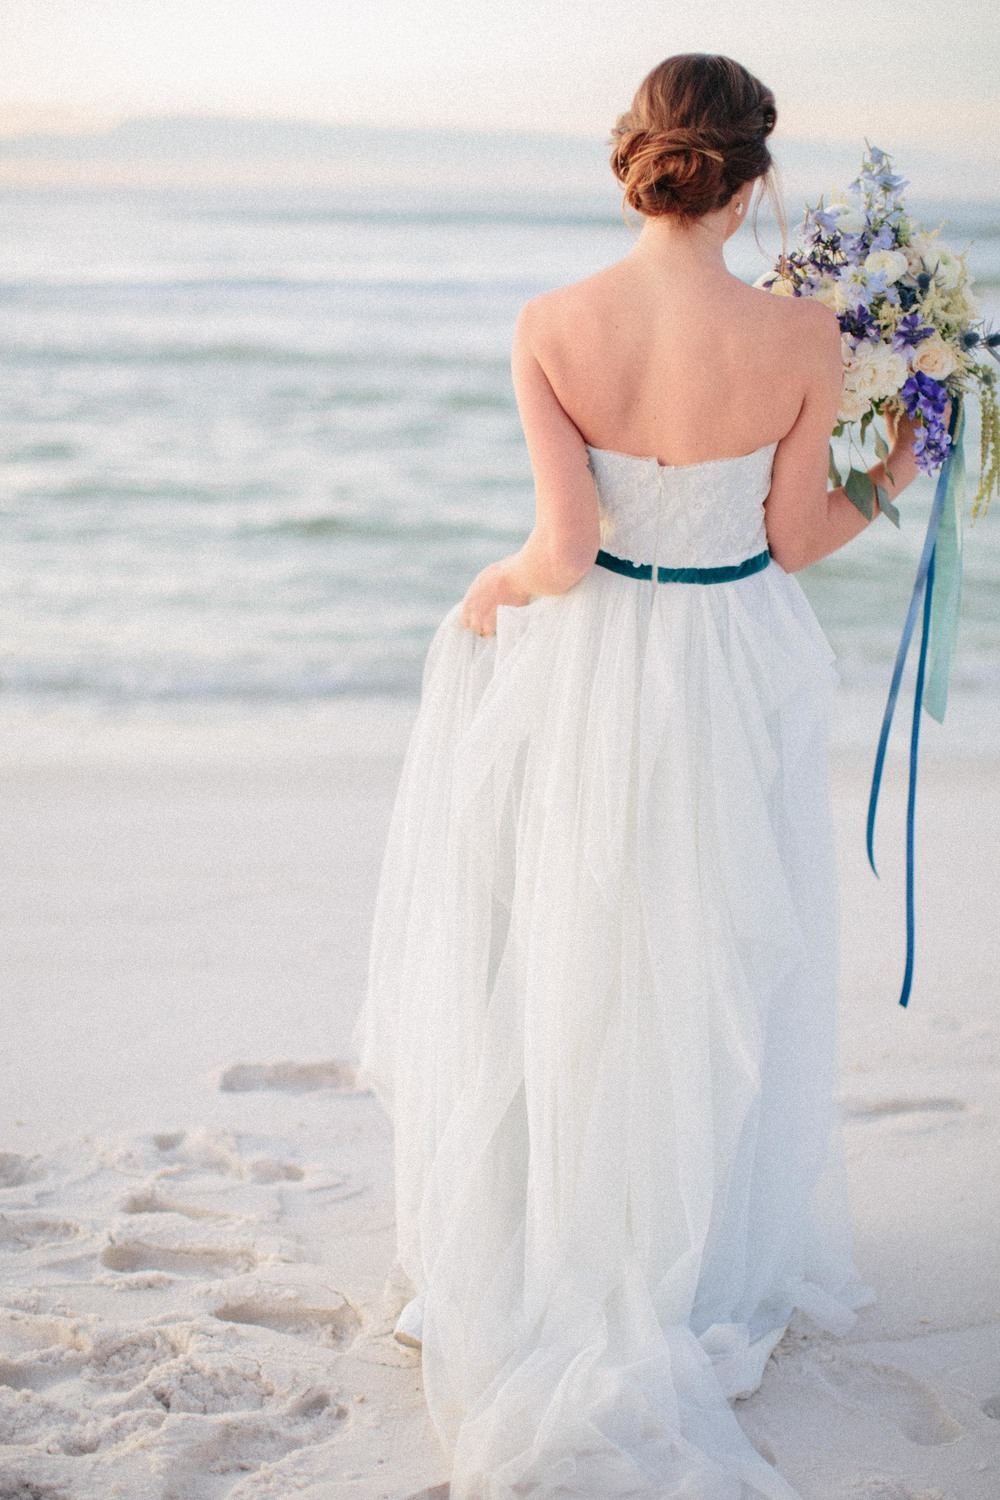 Ais-Portraits-ivey-weddings-and-events-ivory-and-beau-bridal-boutique-sunrise-wedding-sunrise-bridal-session-blue-dress-rebecca-schoneveld-wedding-dress-blue-velvet-wedding-beach-wedding-savannah-bridal-boutique-savannah-wedding-6.jpg